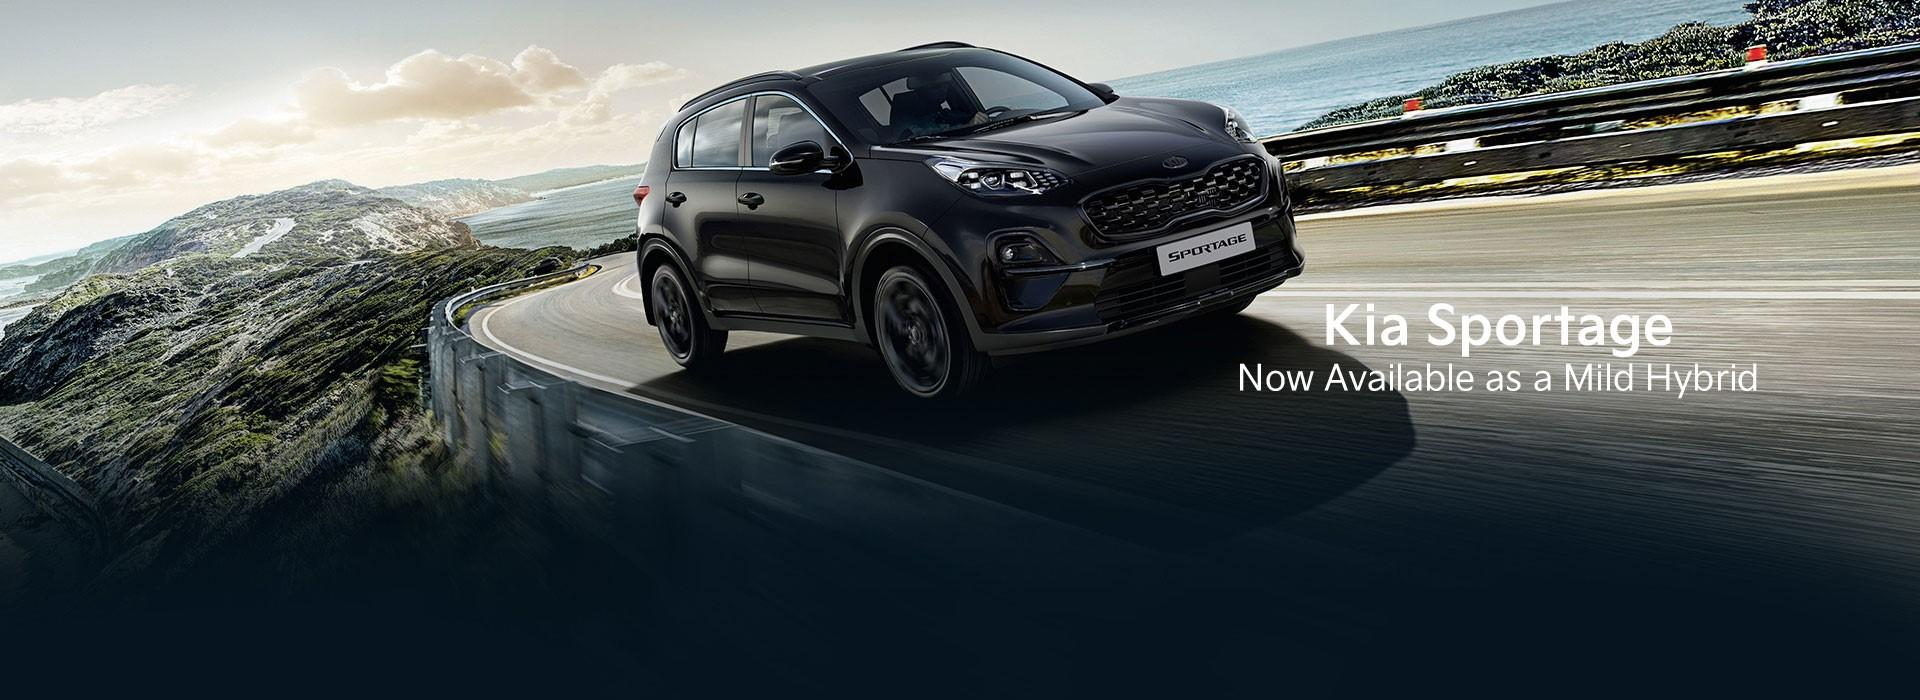 Kia Sportage now available in Mild Hybrid